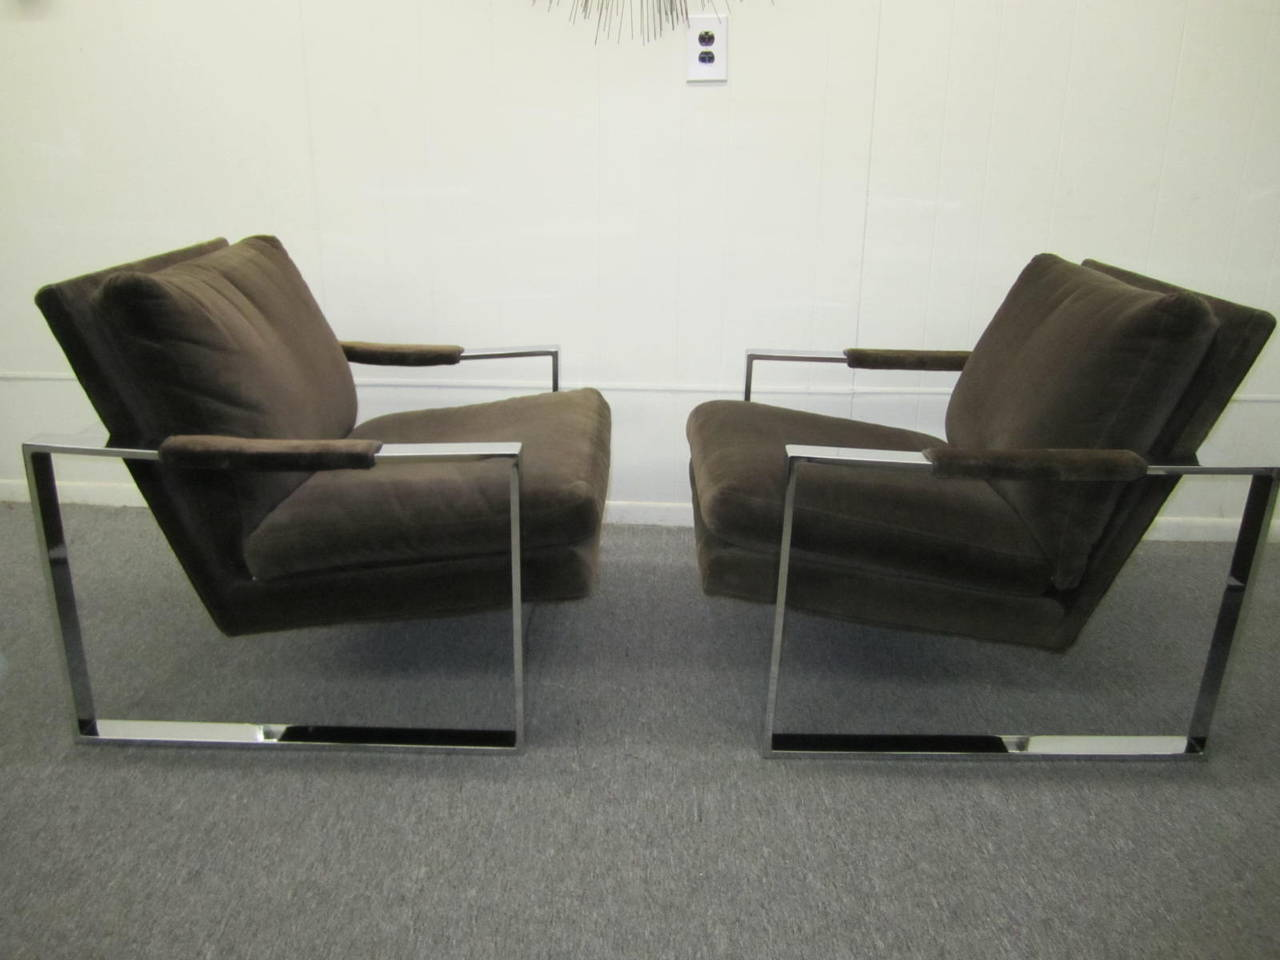 Fabulous Pair of Milo Baughman Chrome Cube Lounge Chairs, Mid-Century Modern For Sale 4